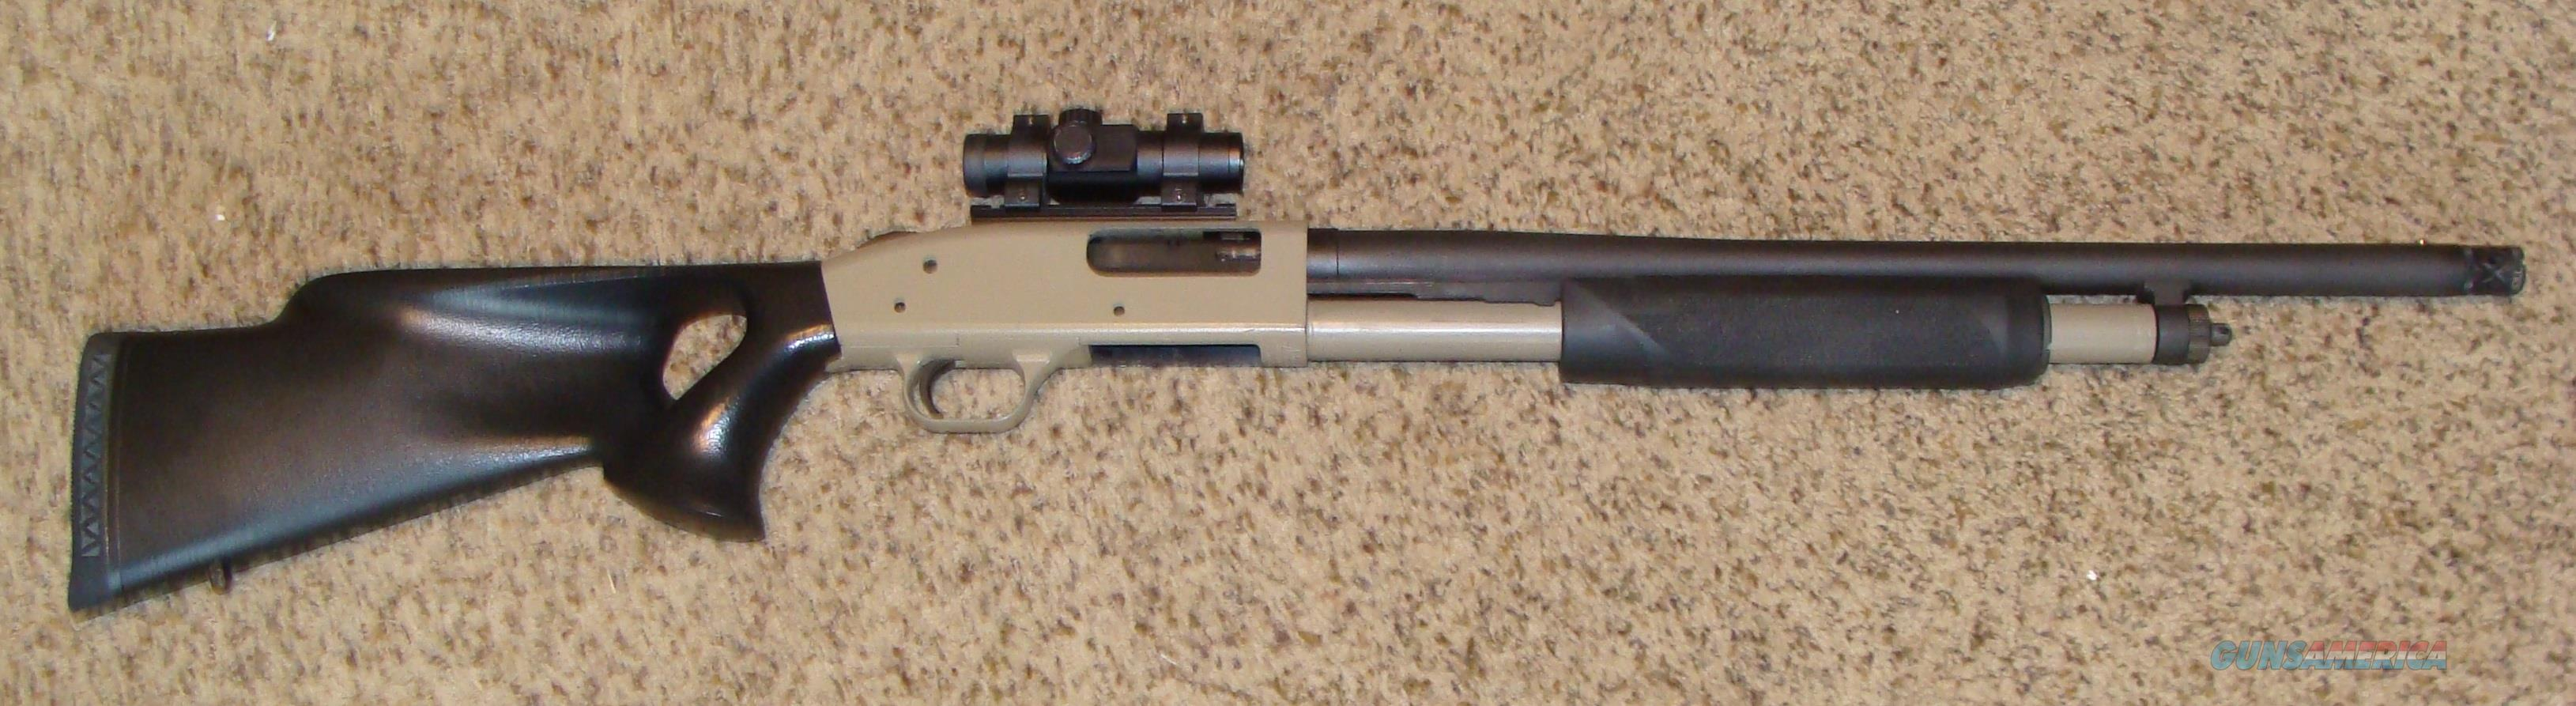 Mossberg Turkry/Self Defense 12ga.  Guns > Shotguns > Mossberg Shotguns > Pump > Sporting